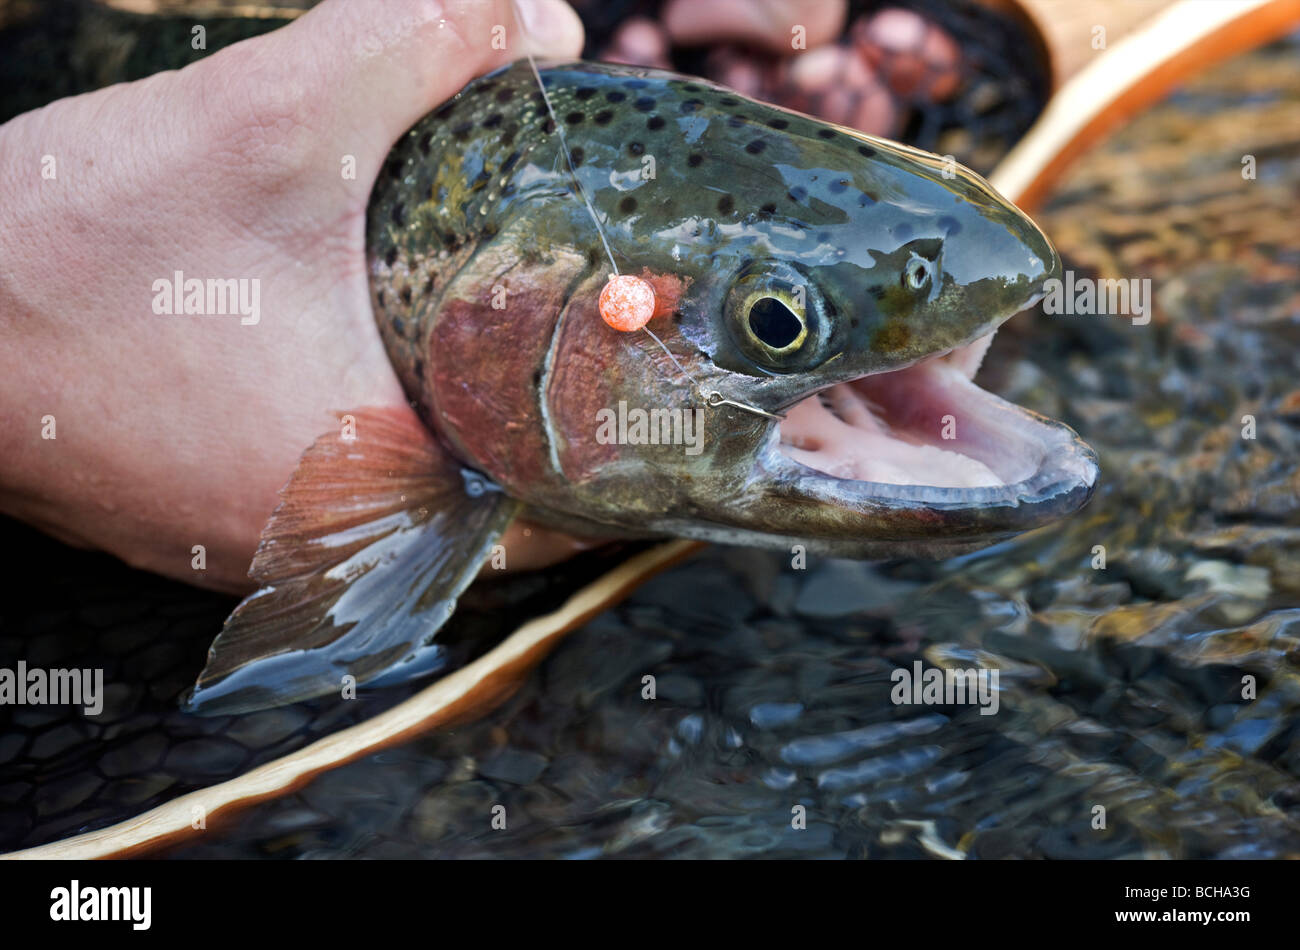 woman holding a rainbow trout caught on an egg while fly fishing